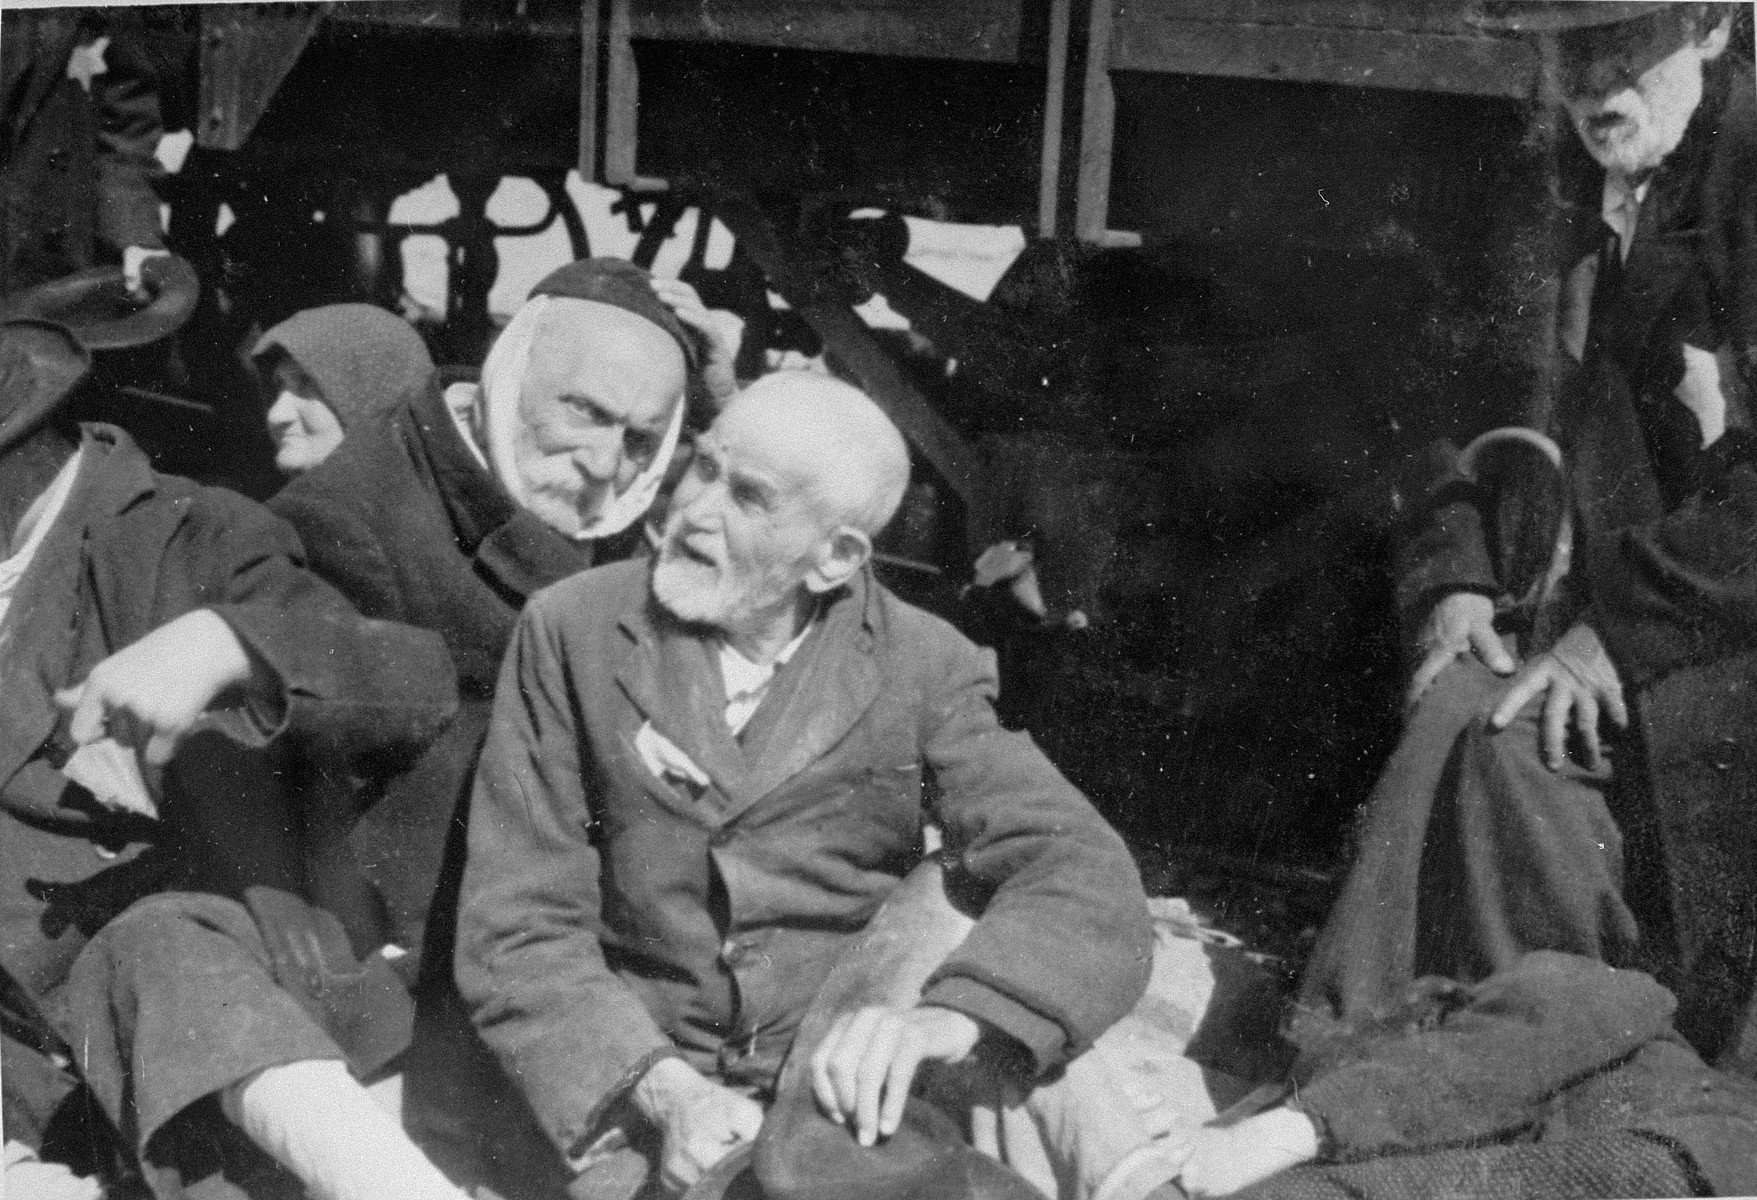 Elderly Jewish men from Subcarpathian Rus sit next to a railcar in Auschwitz-Birkenau prior to being sent to the gas chambers.   Seated on the left is Henryk Naftoli Herz Adler.  He is wearing a handkerchief to cover his face because his beard was forcibly cut off.  Seated at the right is Samuel (Sandor) Ben Yehuda Kohn. The man on the far right is Lili Jacob's paternal grandfather.